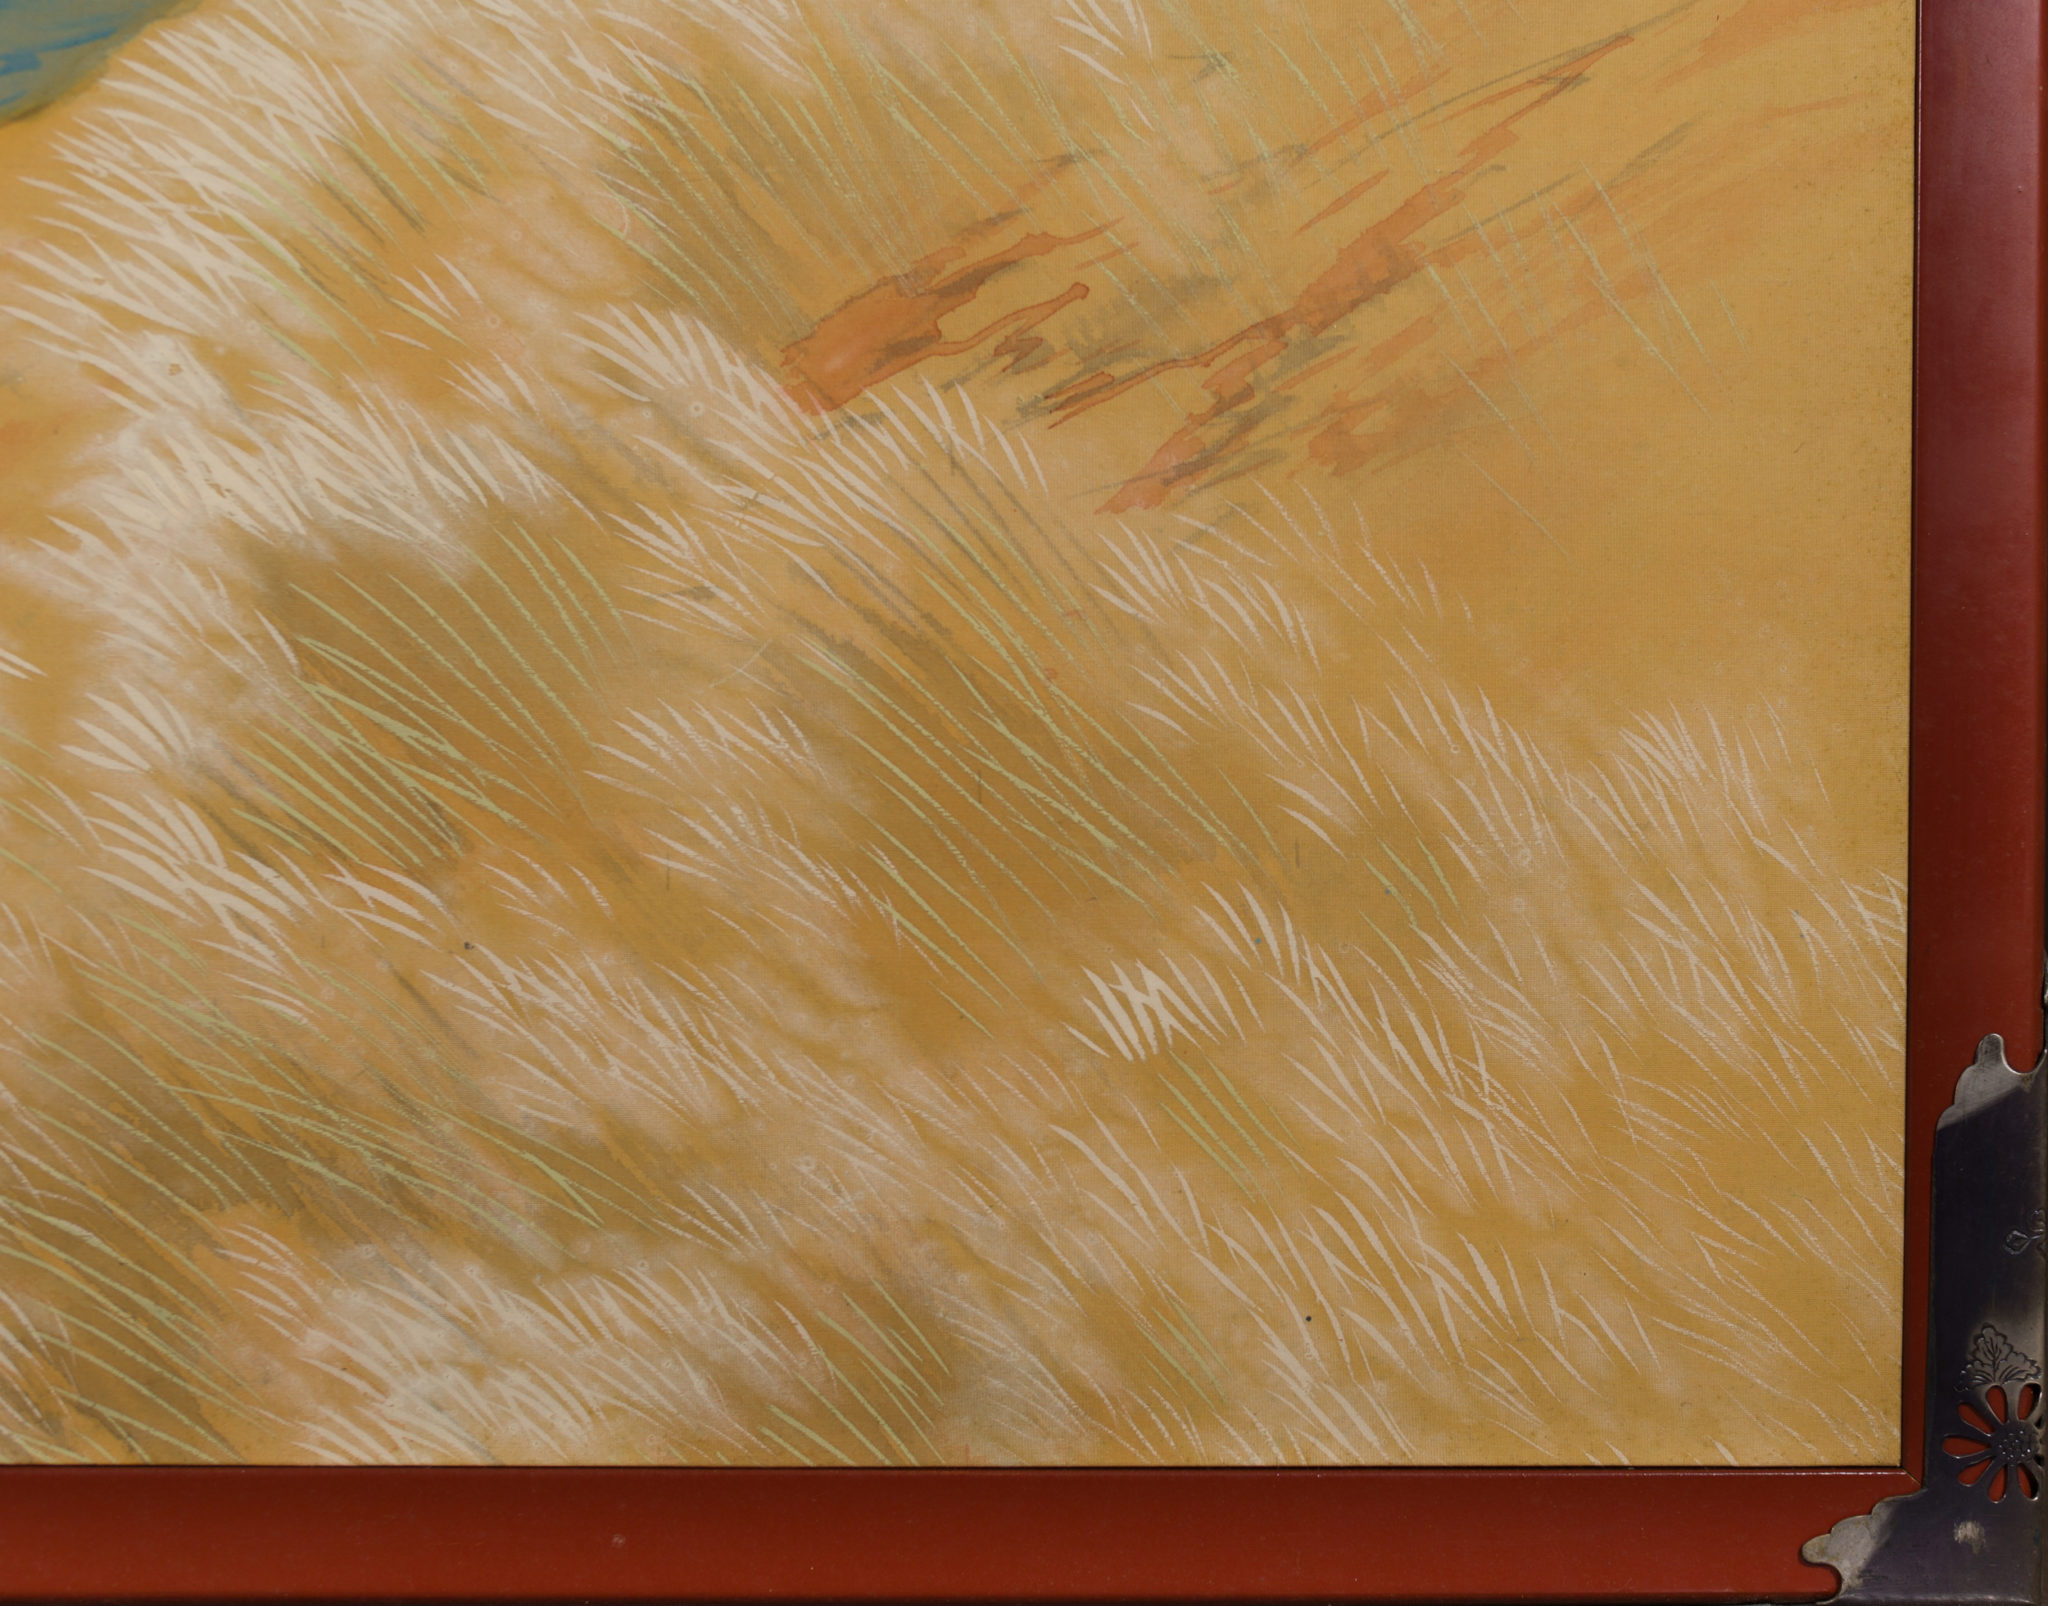 Japanese Two Panel Screen: Autumn Colored Canyon in the Mist